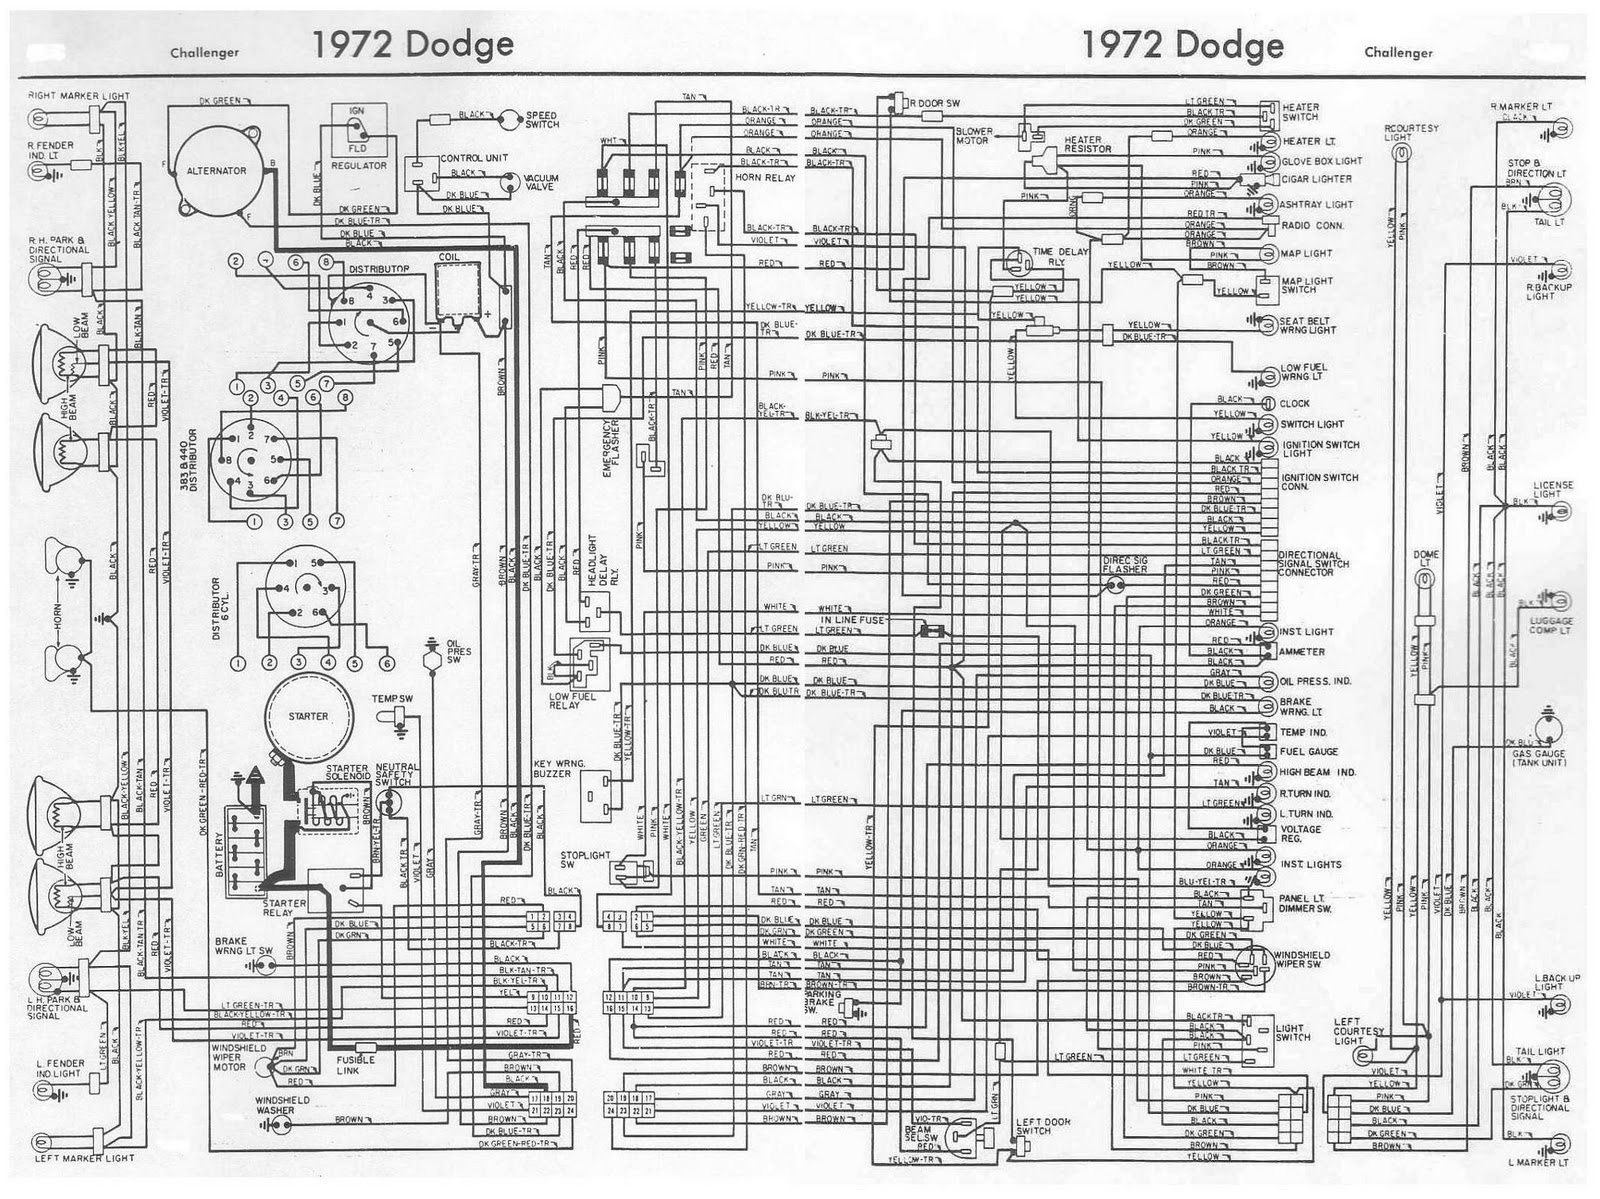 72 challenger wiring diagram wiring diagram pictures u2022 rh mapavick co uk Schematic Circuit Diagram Fuel Pump Relay Wiring Diagram